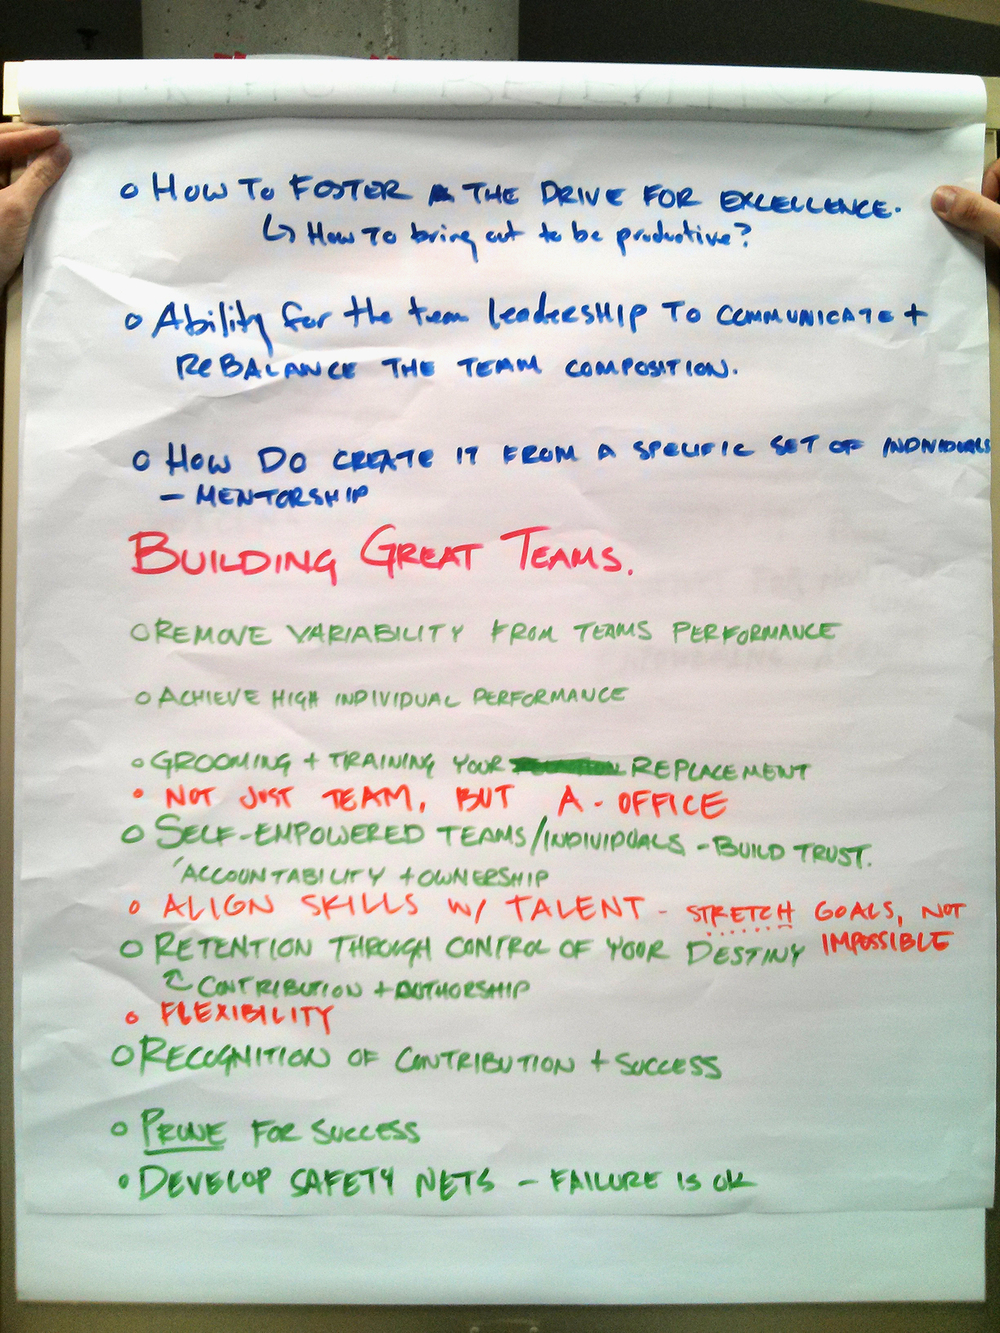 Corrie Messinger, Peter Ruggiero, Janis Brackett, Patricia Canevarimembers of the A-Team Hack worked to define the baseline for makes a greatA-Team